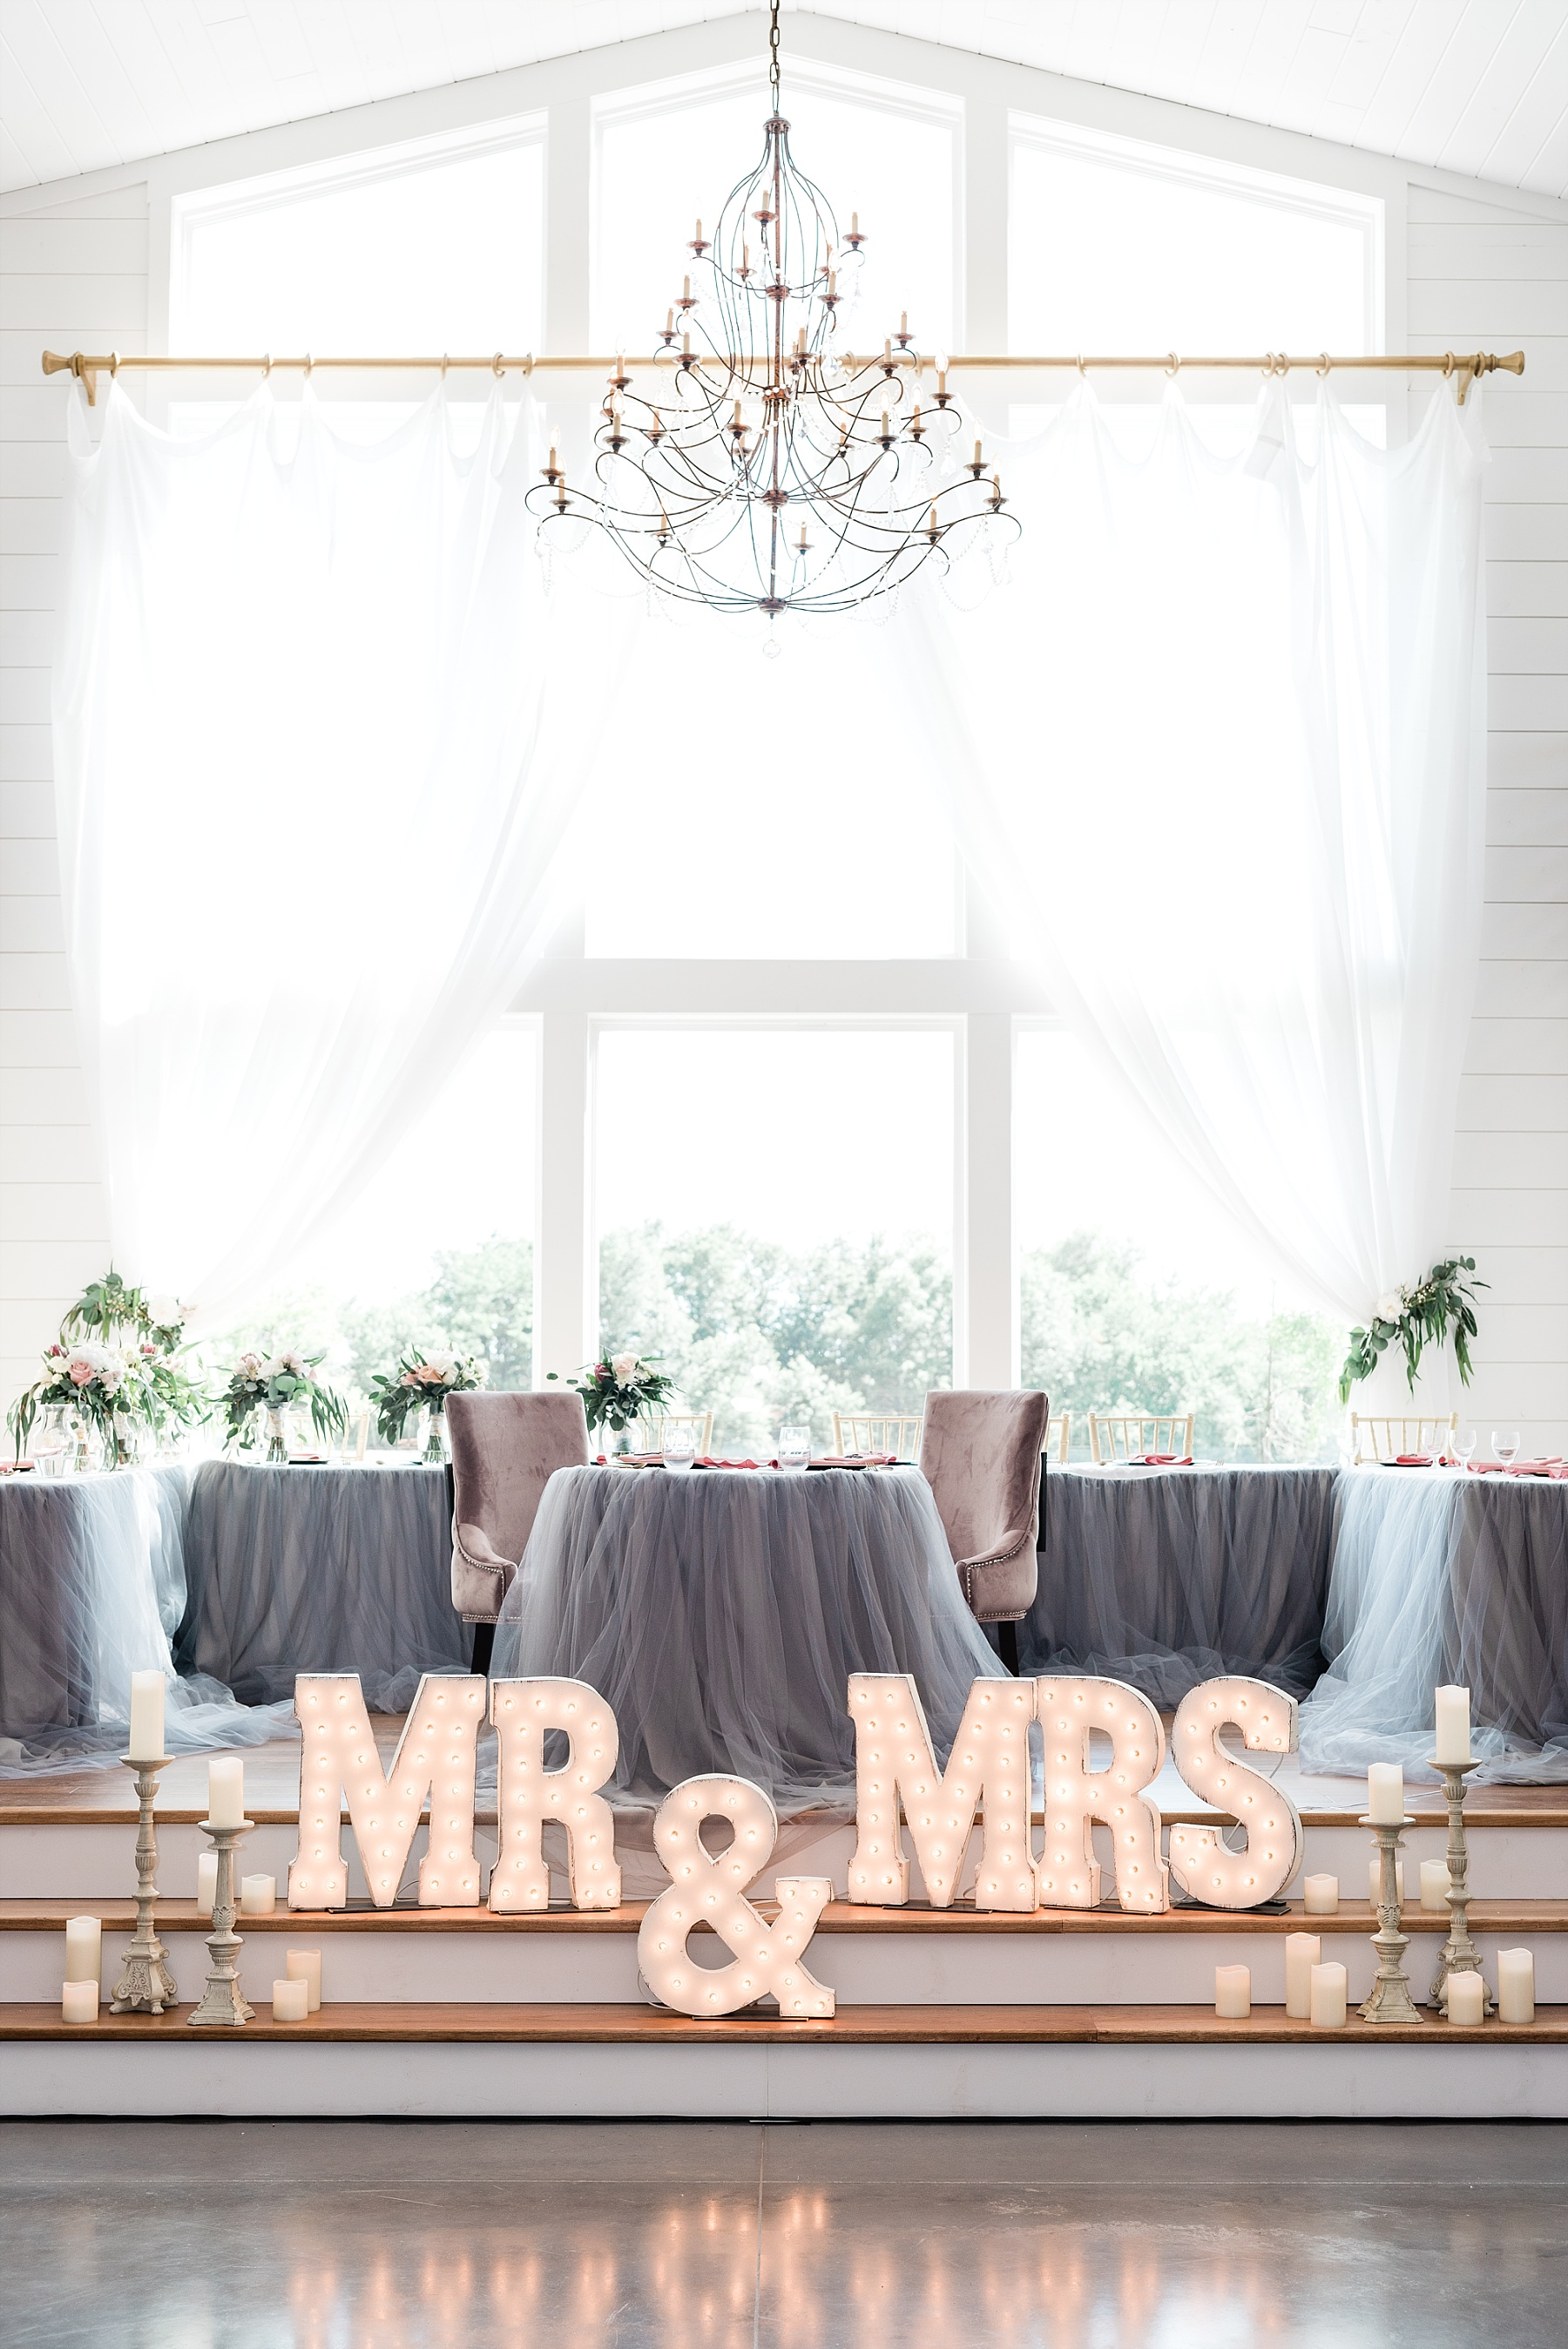 Stunning Heartfelt, Elegant, Fine Art, Chic, Outdoor Spring Wedding with Blush, Cream, Greenery, Rose Gold, and Sequins at Emerson Fields Venue by Kelsi Kliethermes Photography_0036.jpg